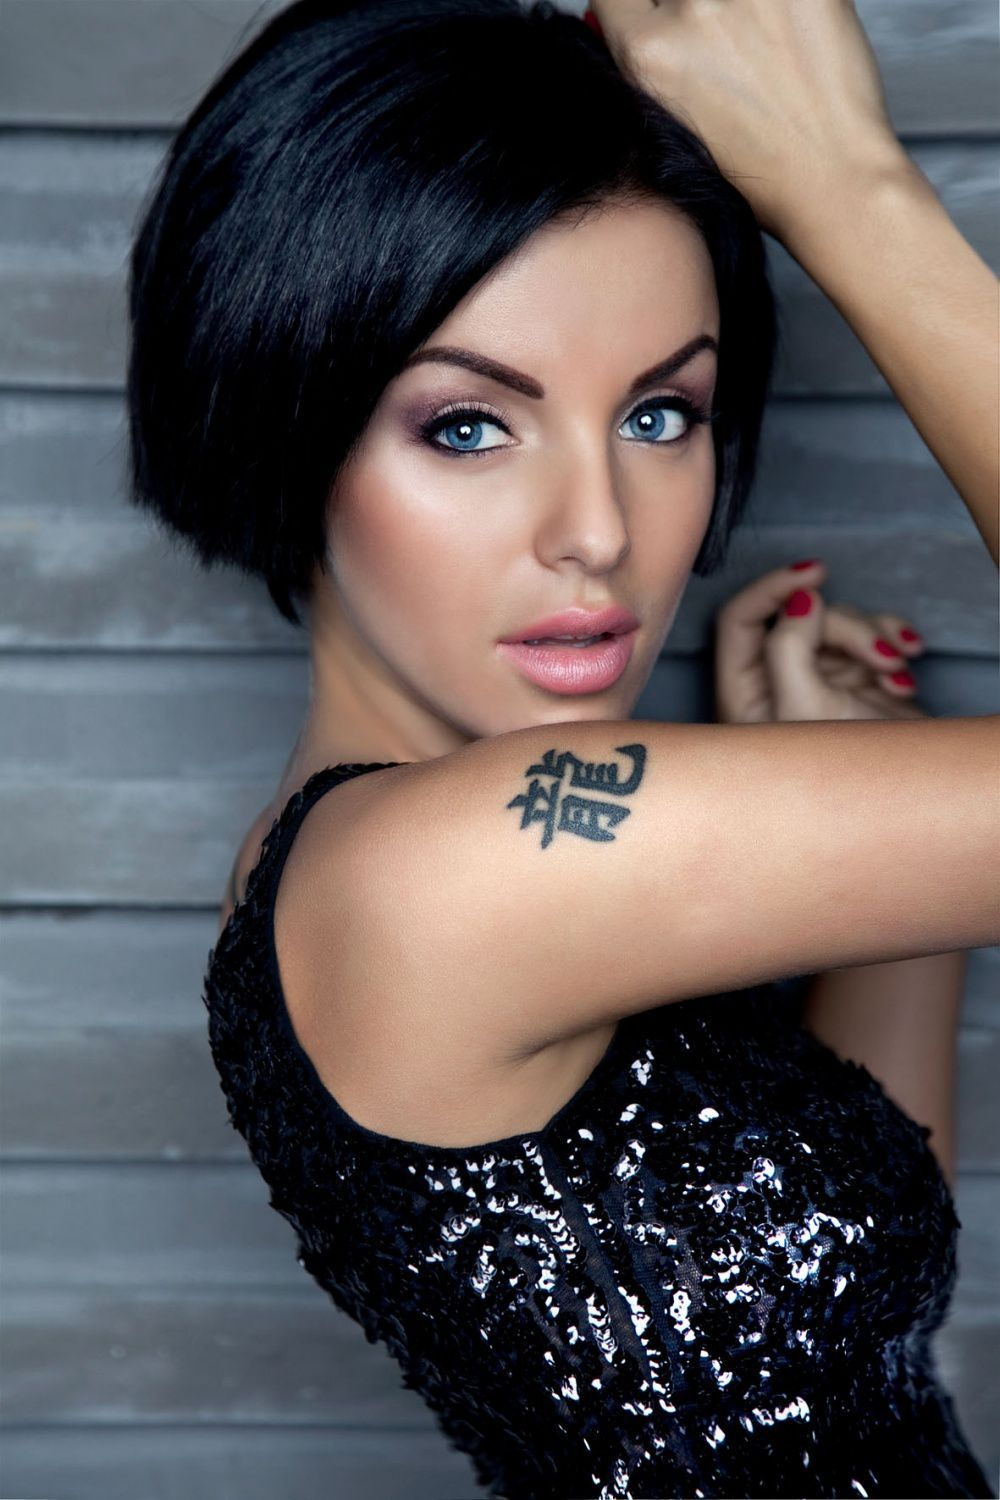 cleavage Is a cute Julia Volkova naked photo 2017